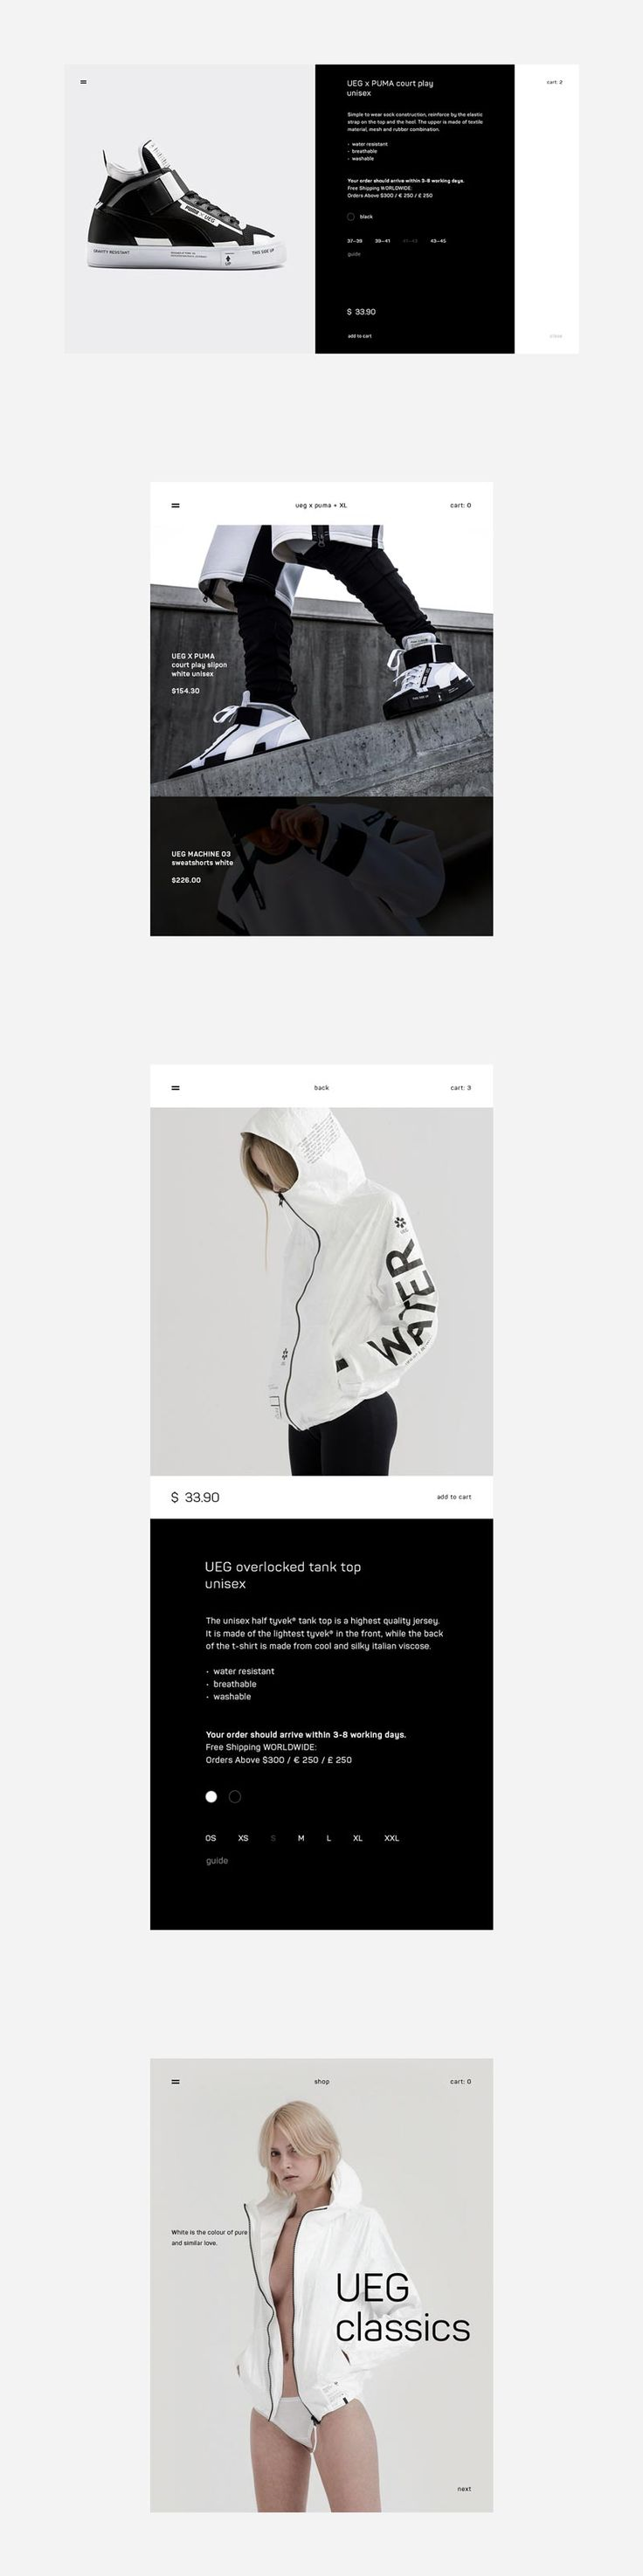 Design your own t-shirt best website - Best Website Inspiration Of March 2017 Is A Collection Of The Best Websites And Web Designs Including Justin Timberlake Harley Davidson Moonlight And